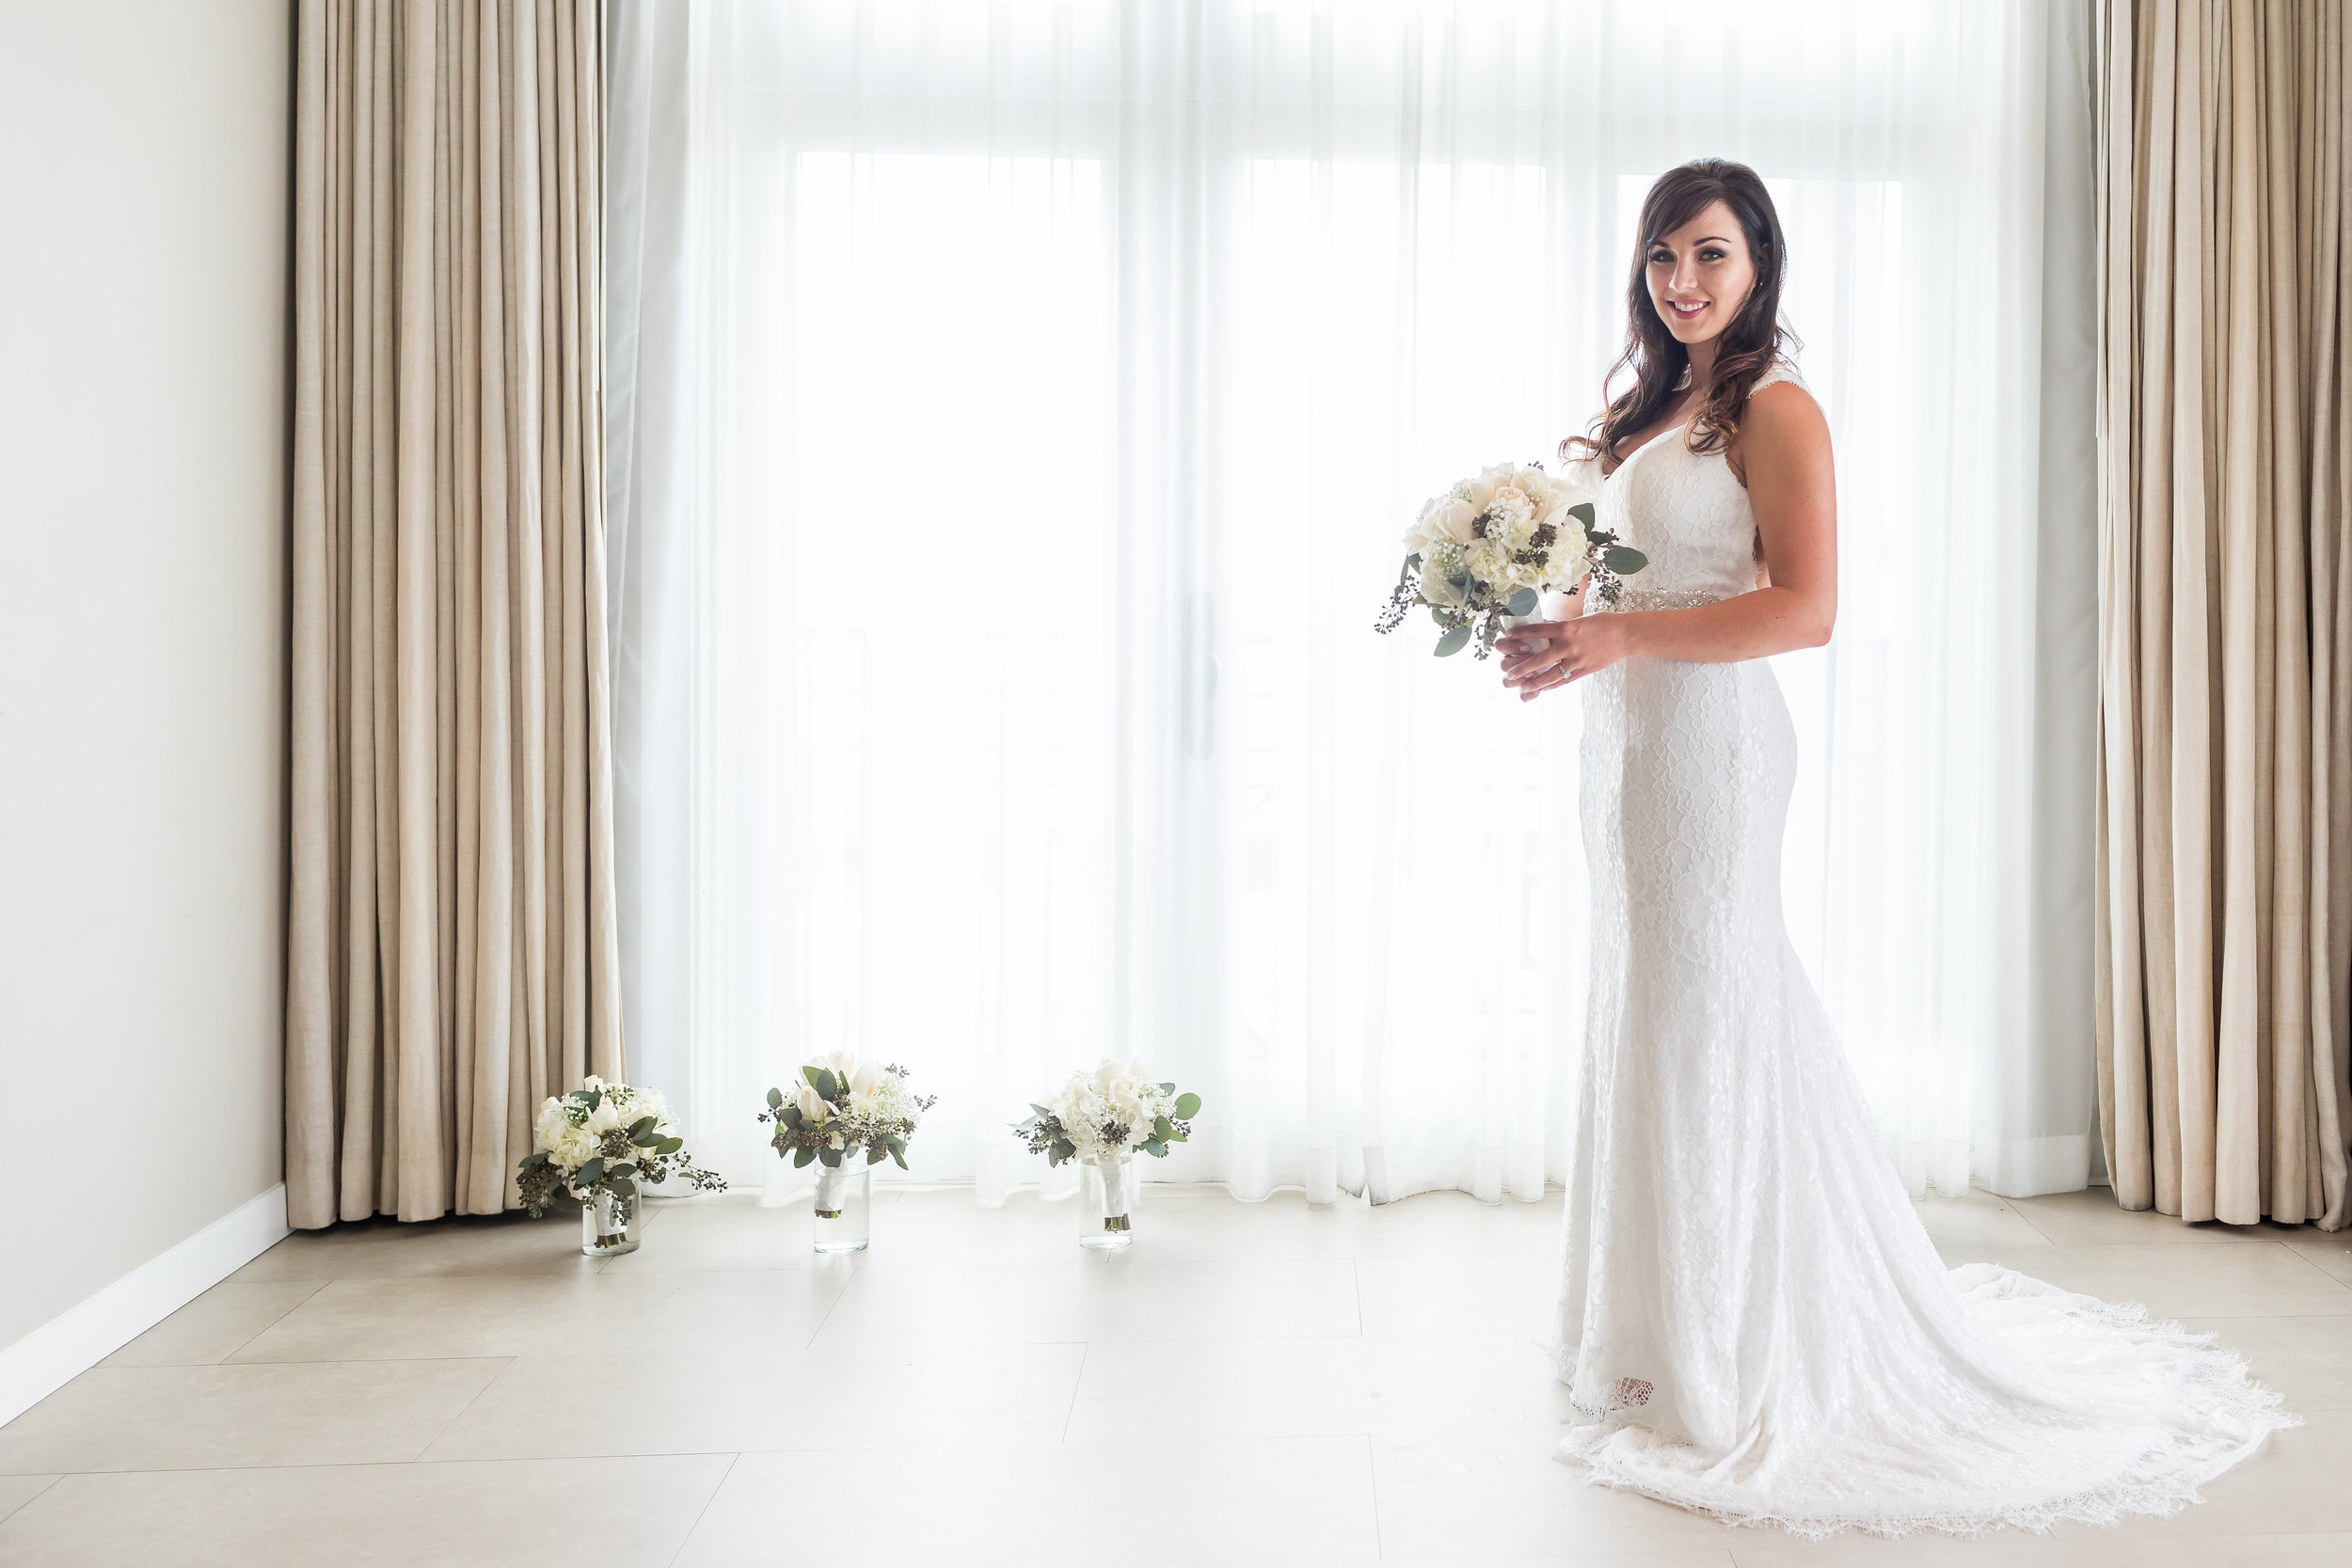 Photo of Beautiful Bride with bouquets in front of tall windows at Hotel Metropole.jpg